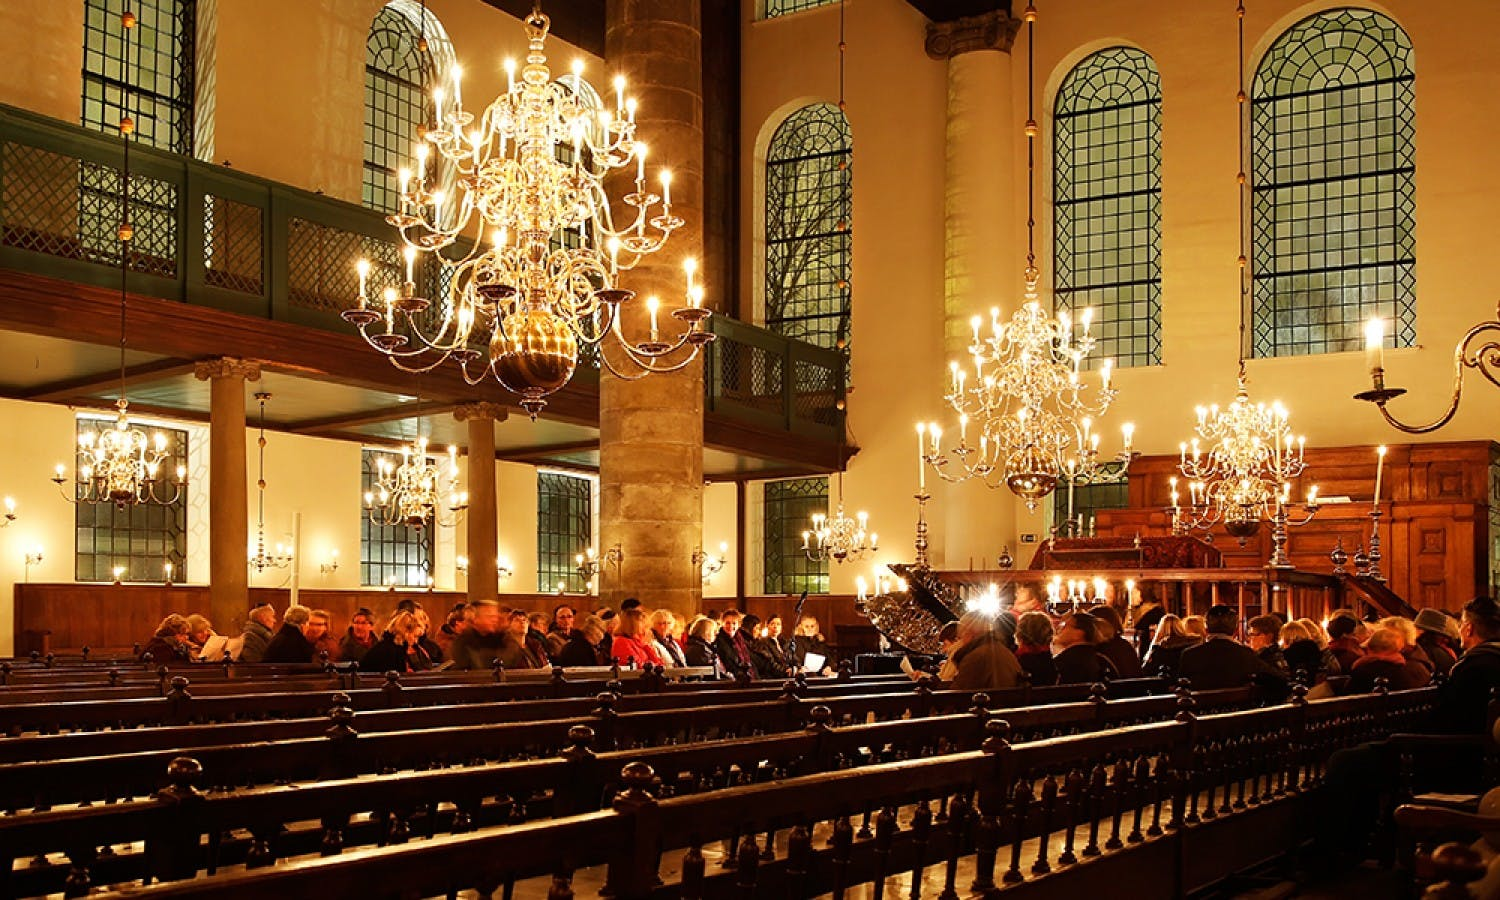 Candlelit concert at Portuguese Synagogue in Amsterdam